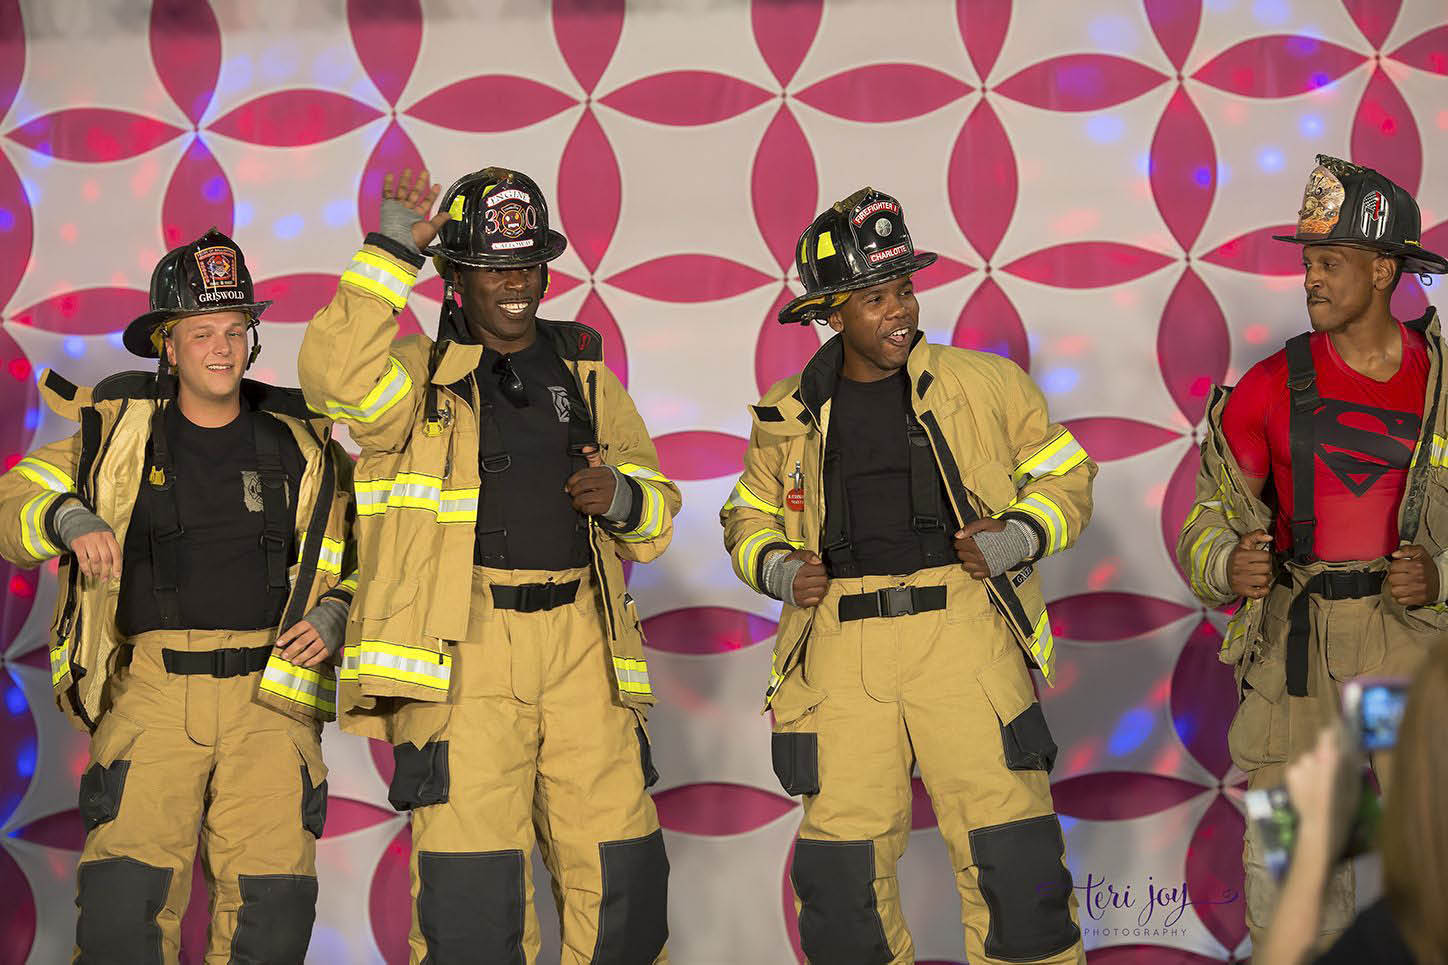 Firefighters will be at the Savannah Southern Women's Show